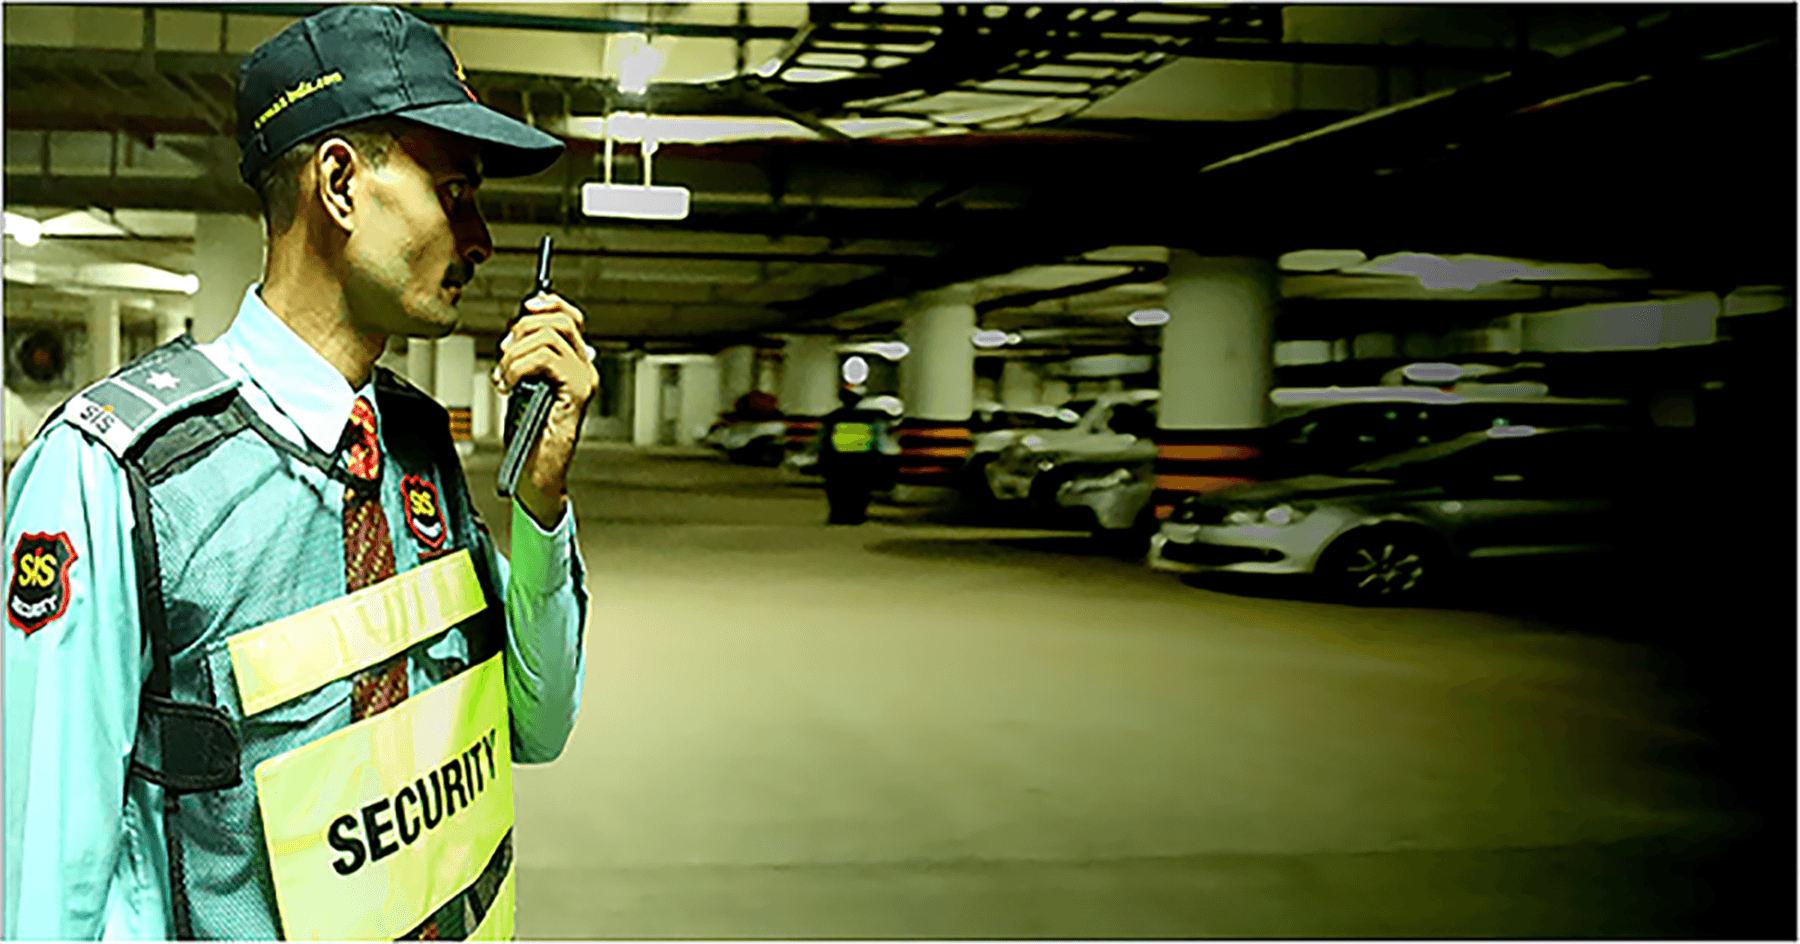 Complete Parking Management Solution Provider In India